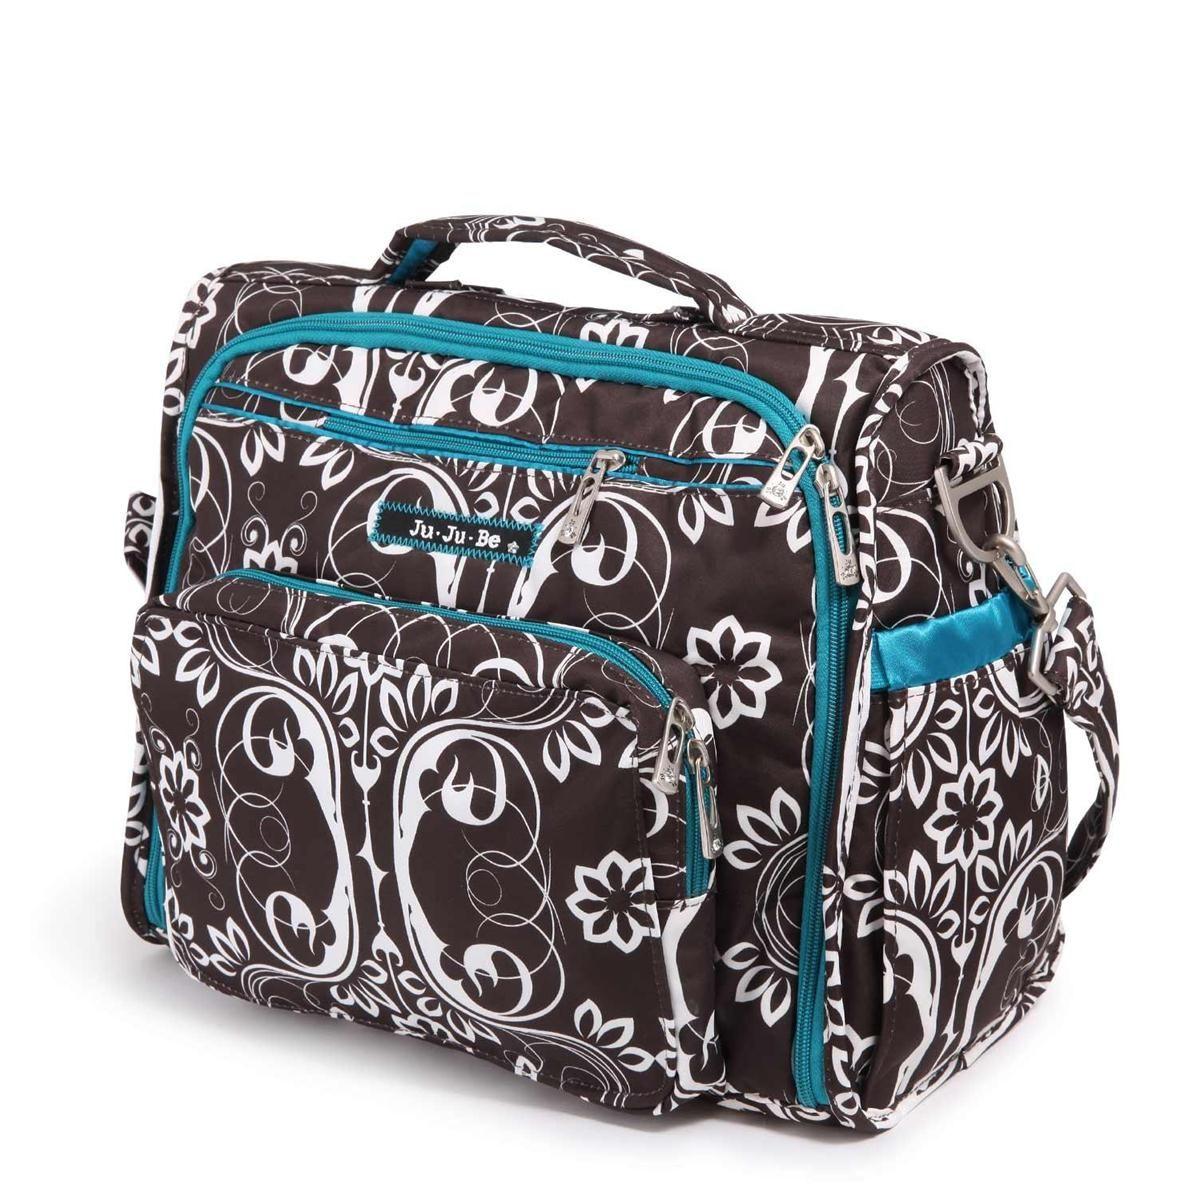 Just Found A Diaper Bag I Love Unfortunately It May Be The Most Expensive